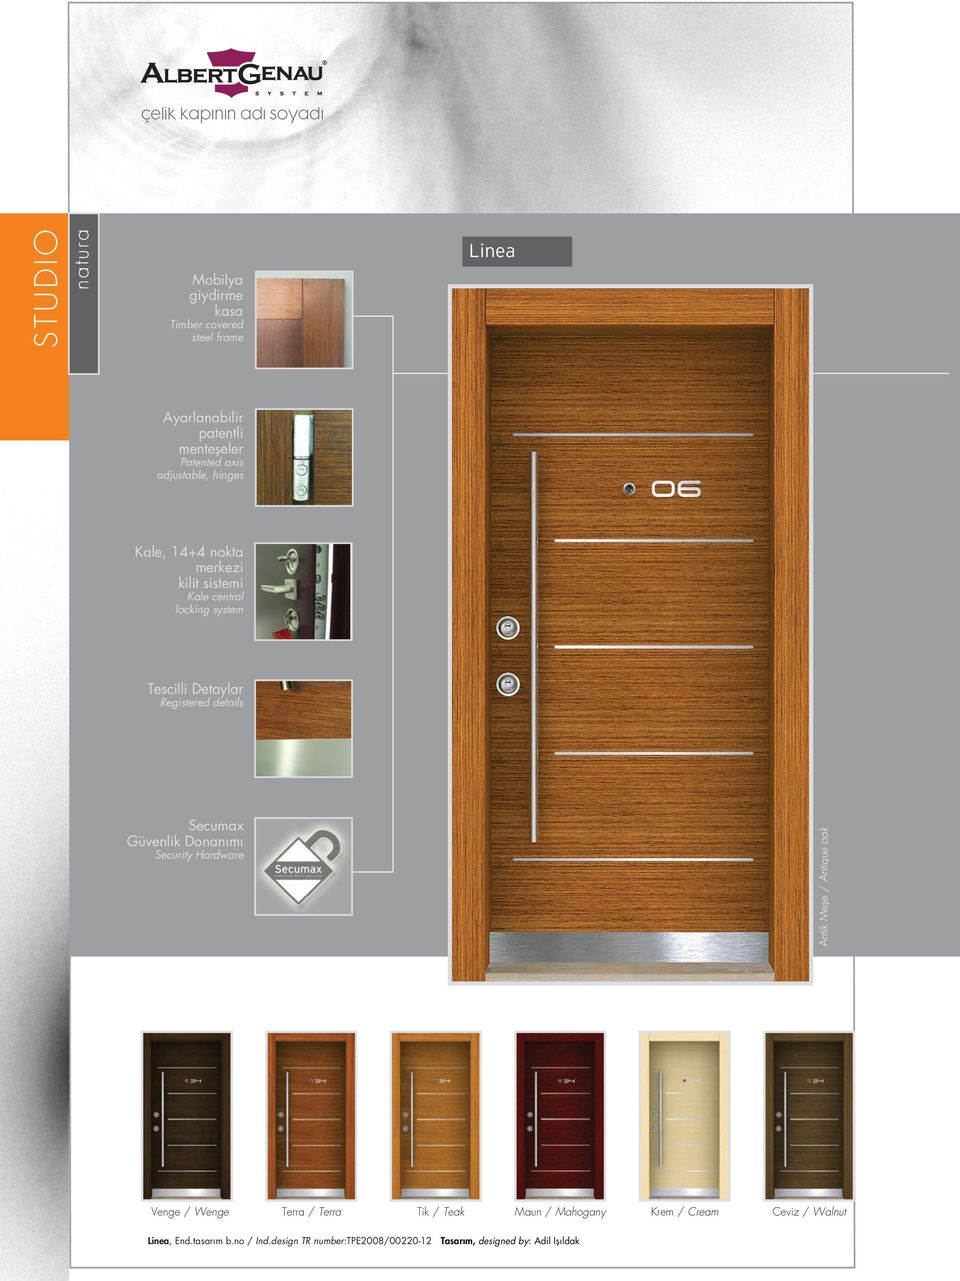 Registered details Secumax Güvenlik Donan m Security Hardware Antik Mefle / Antique oak Venge / Wenge Terra / Terra Tik